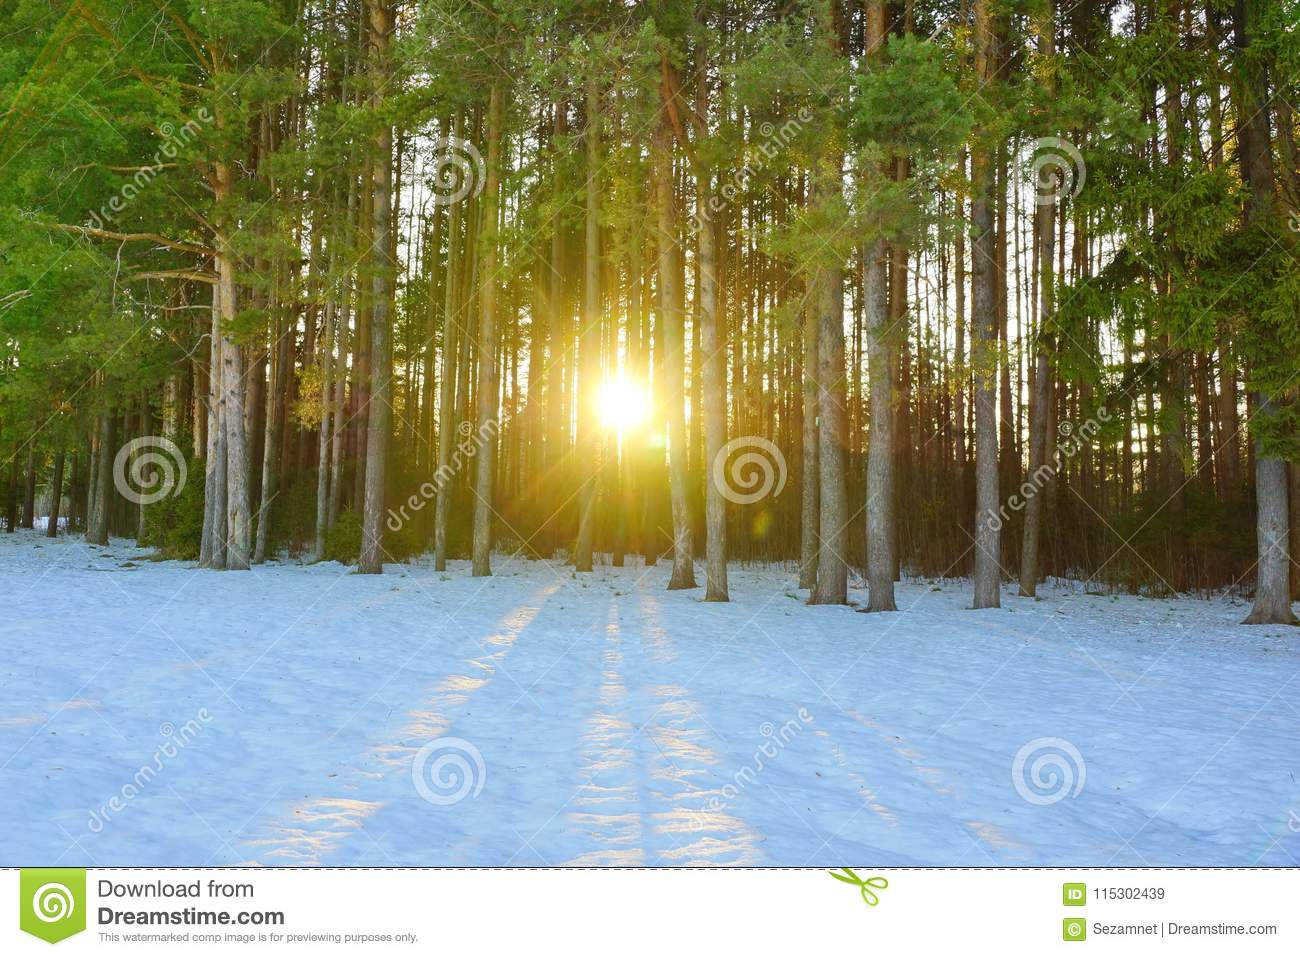 winter landscape in a pine forest the sun shines through the trees shadows in the snow